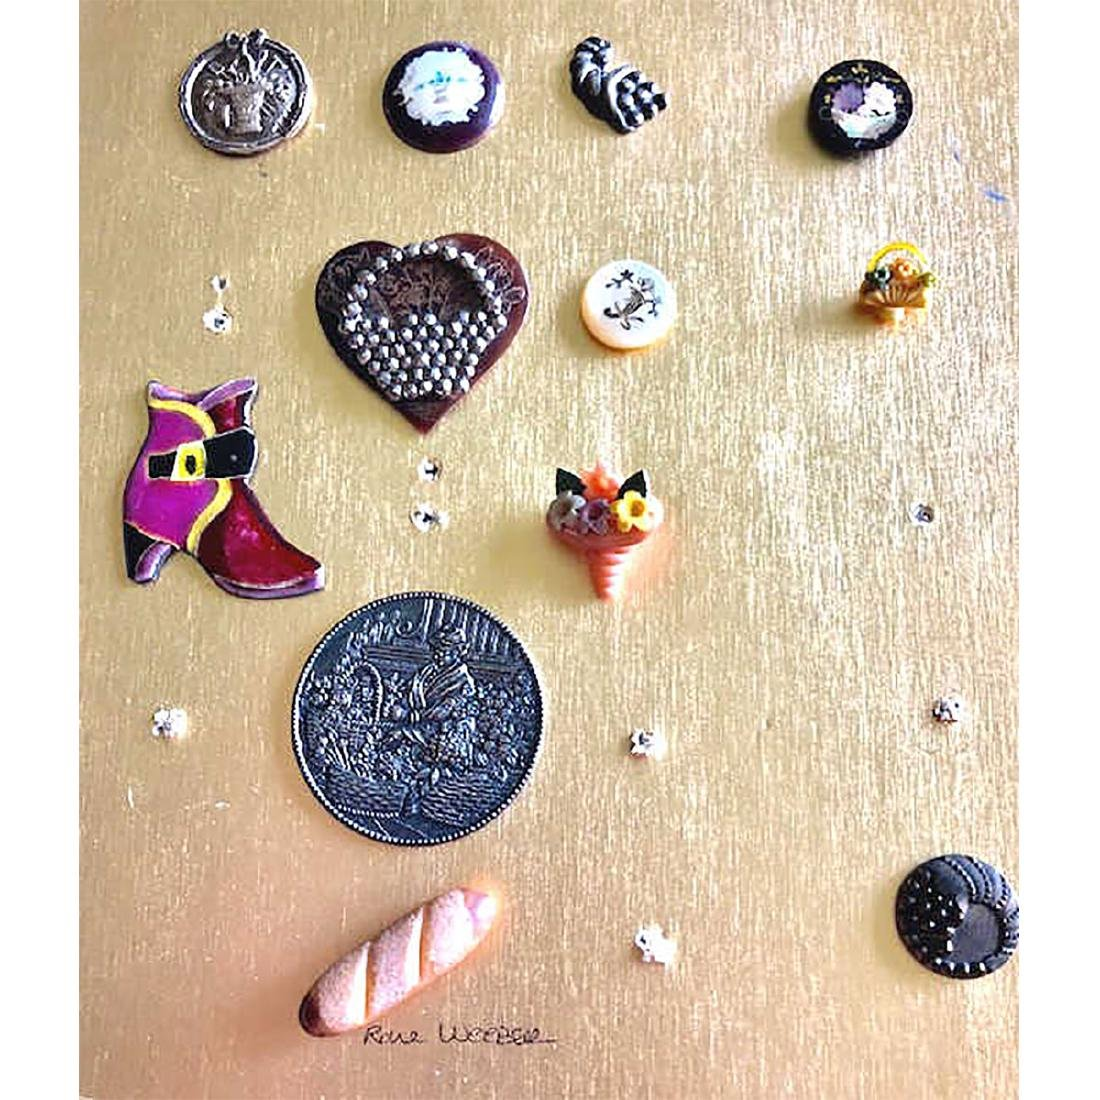 12 M/L MOSTLY BASKET BUTTONS ASSORTED MATERIALS